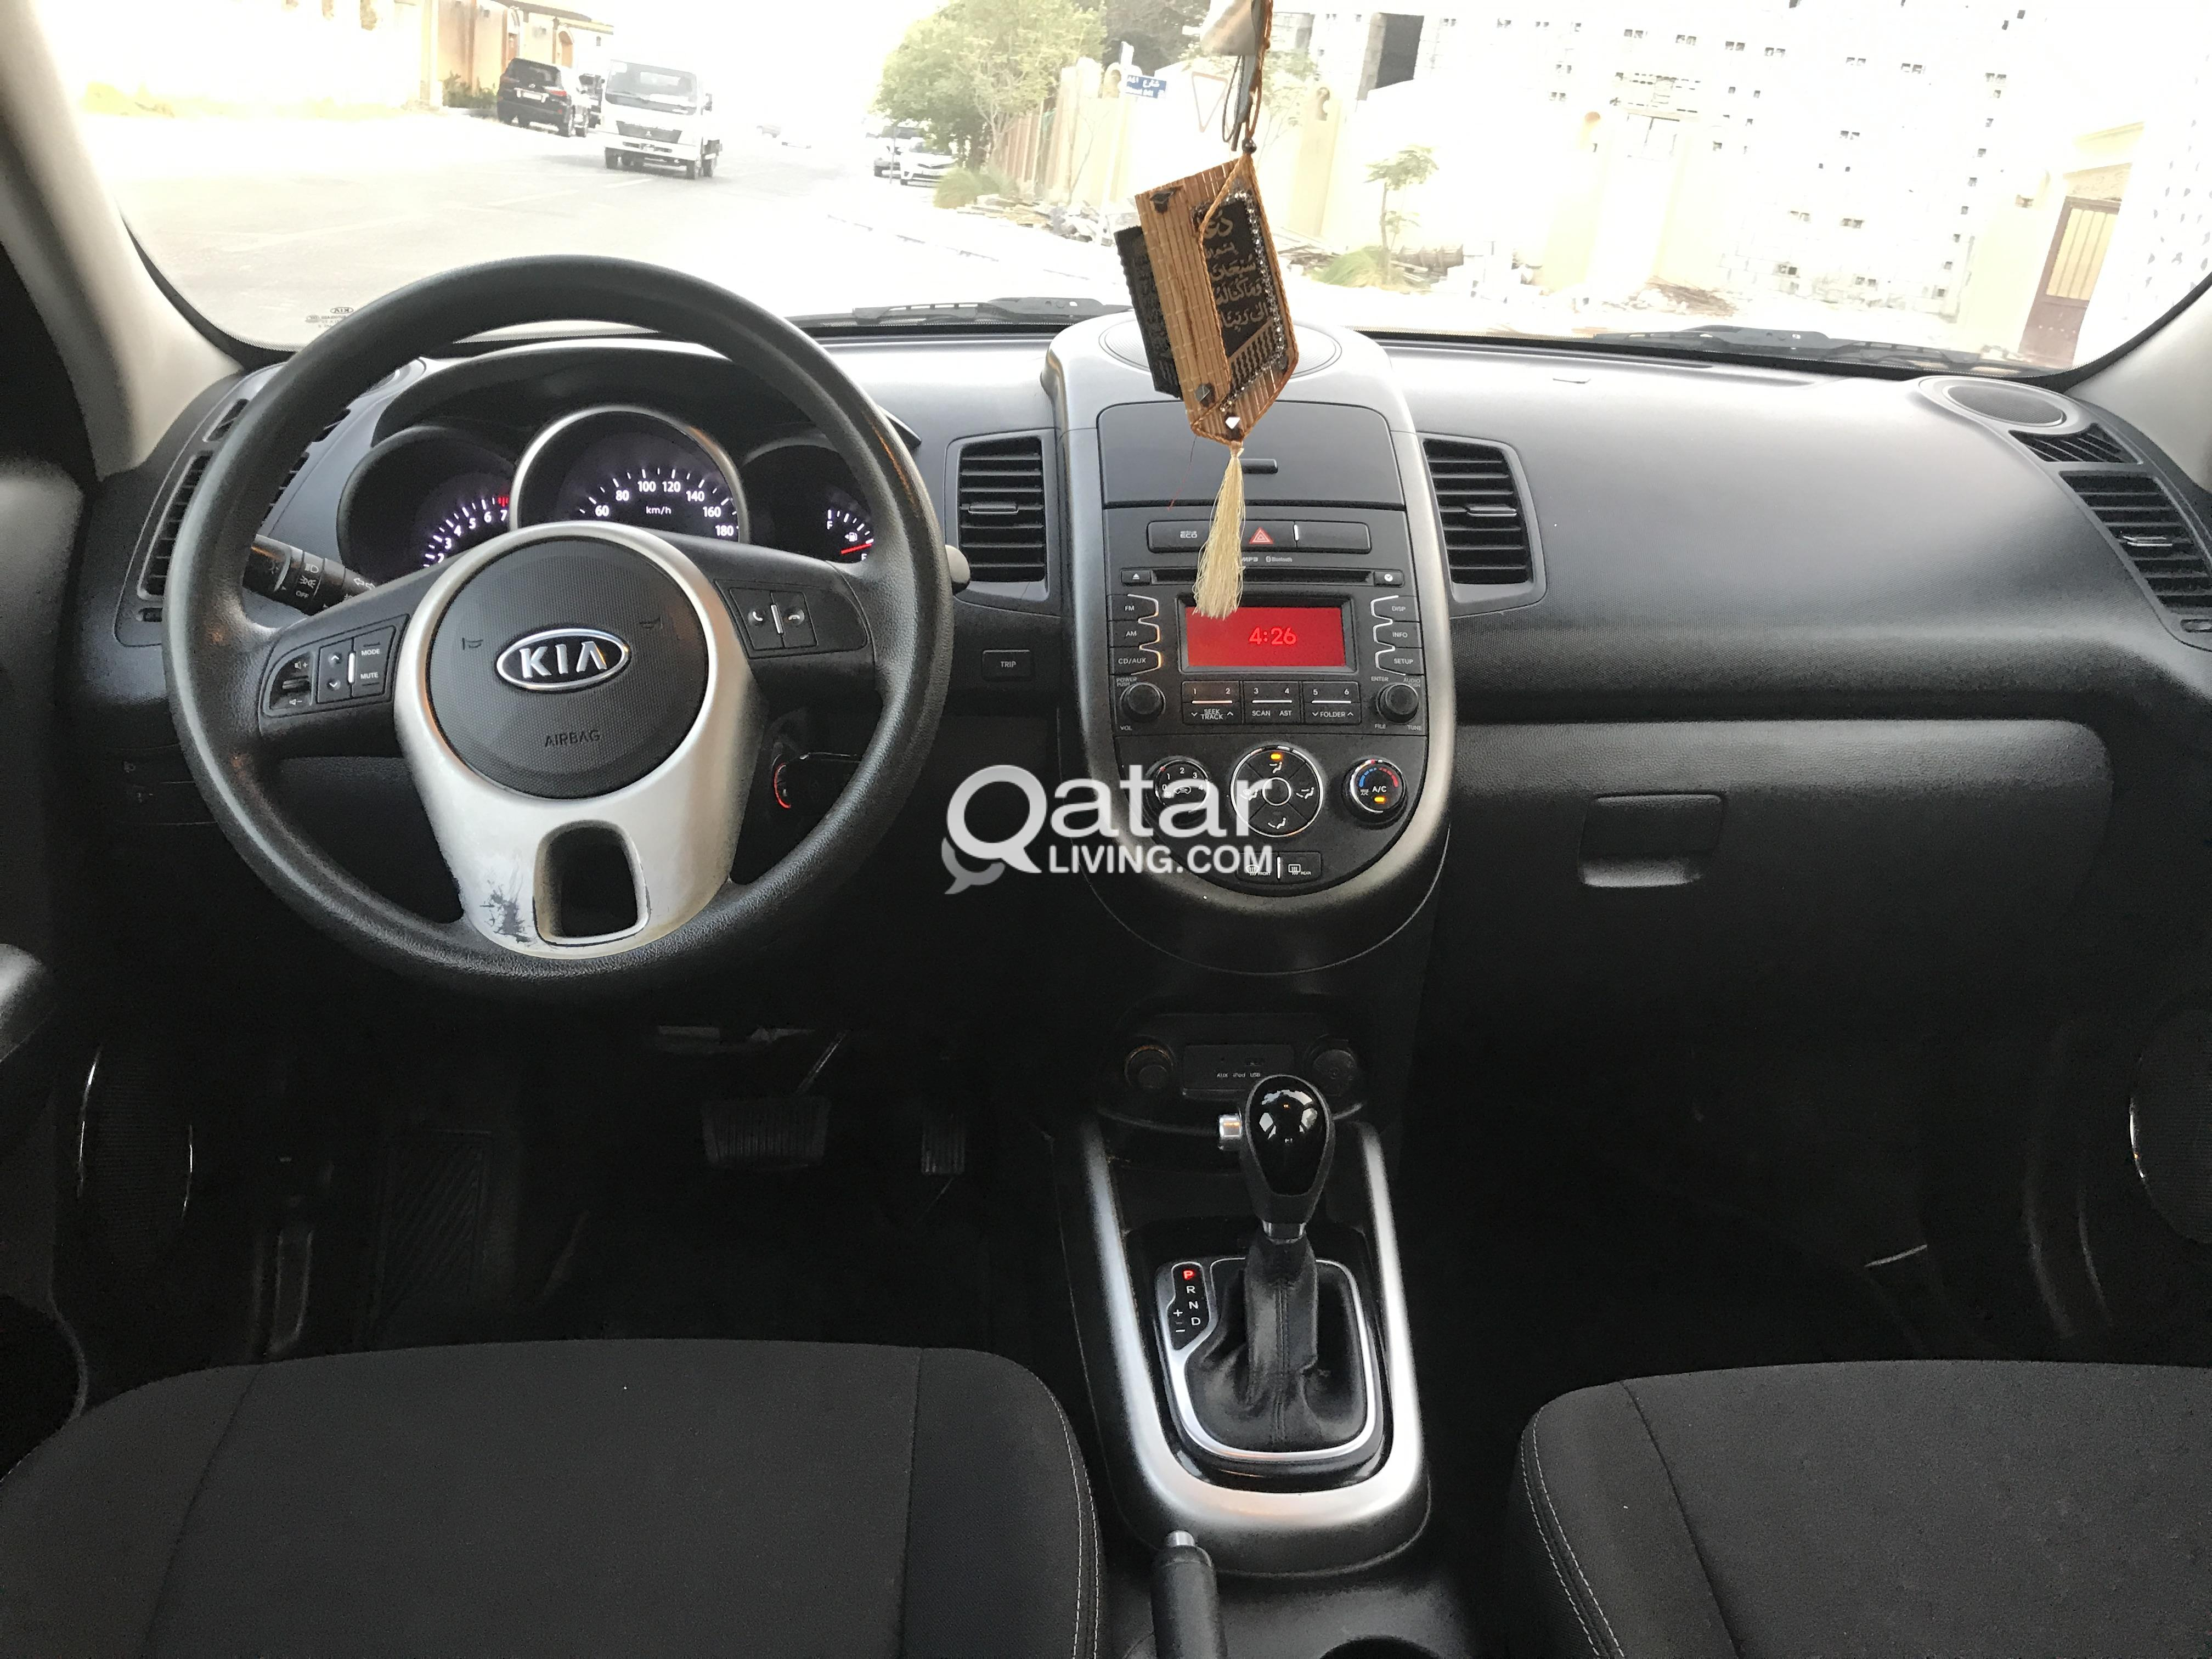 Kia Soul 2013 Dealer Maintained No Accidents